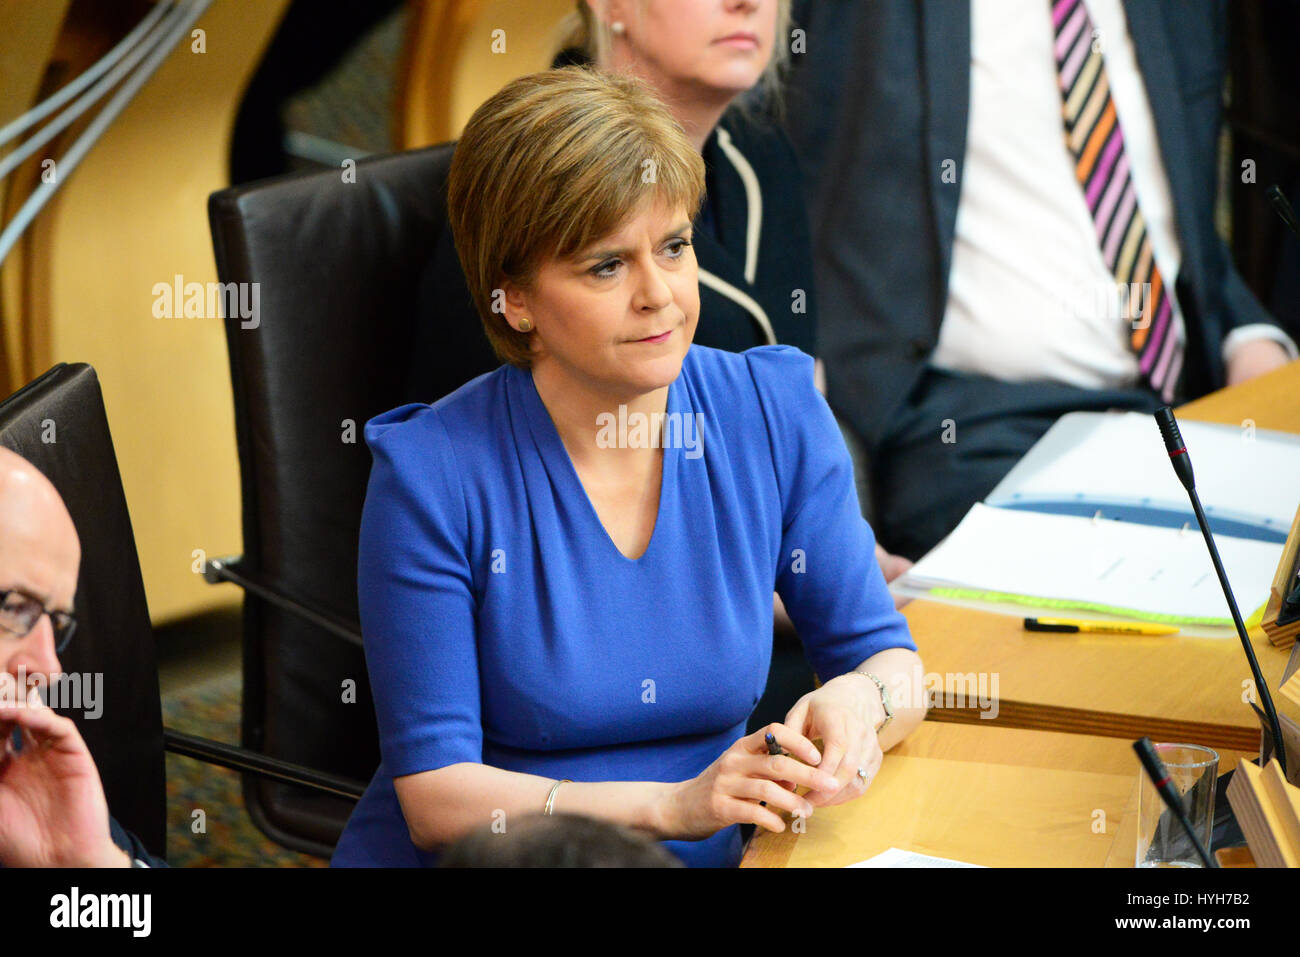 File image: Nicola Sturgeon pictured at First Minister's Questions in the Scottish Parliament on the day before - Stock Image